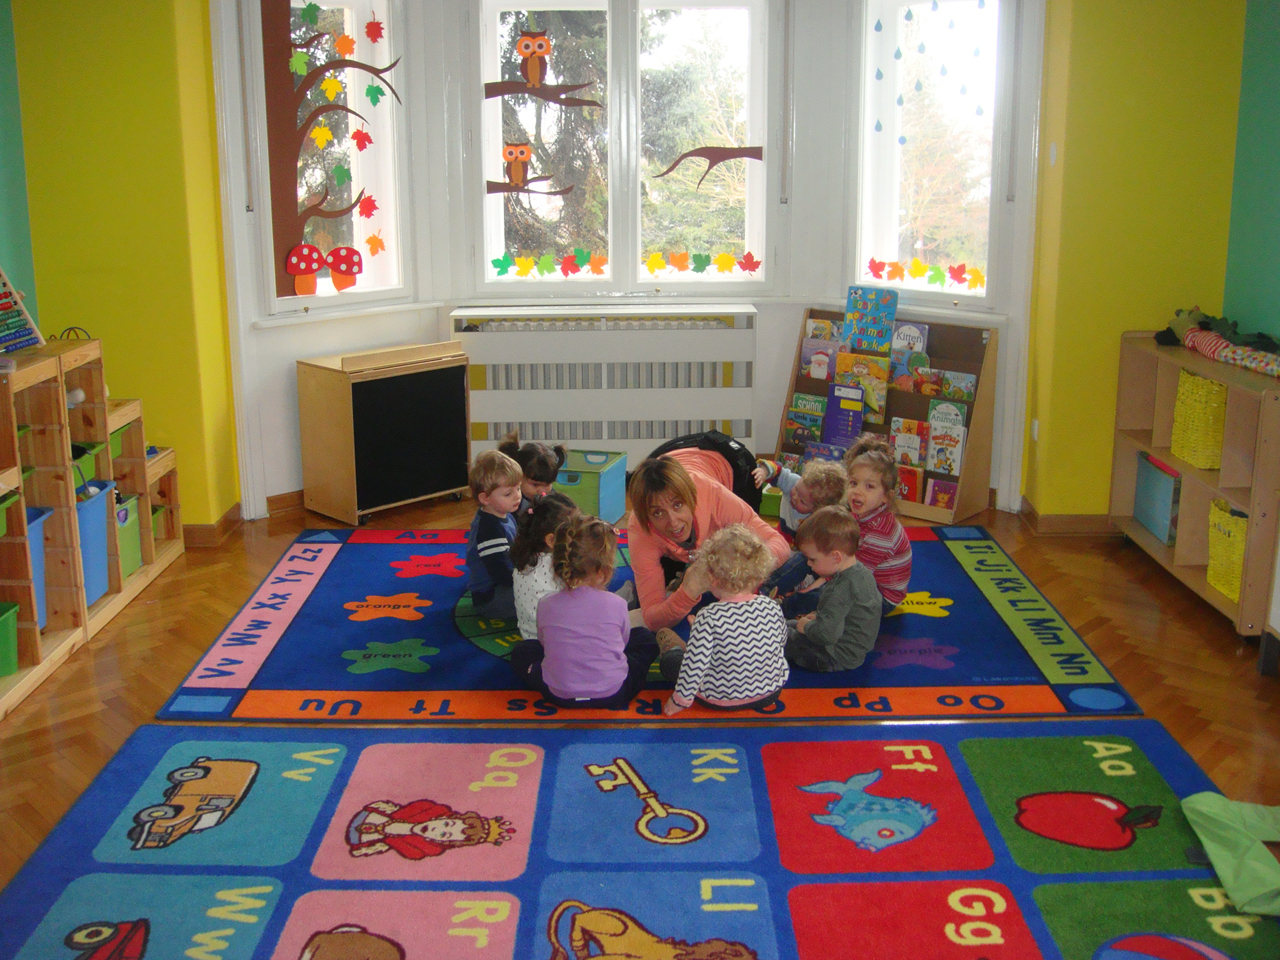 INTERNACIONALNI VRTIĆ PLAY LEARN GROW Kindergartens Beograd